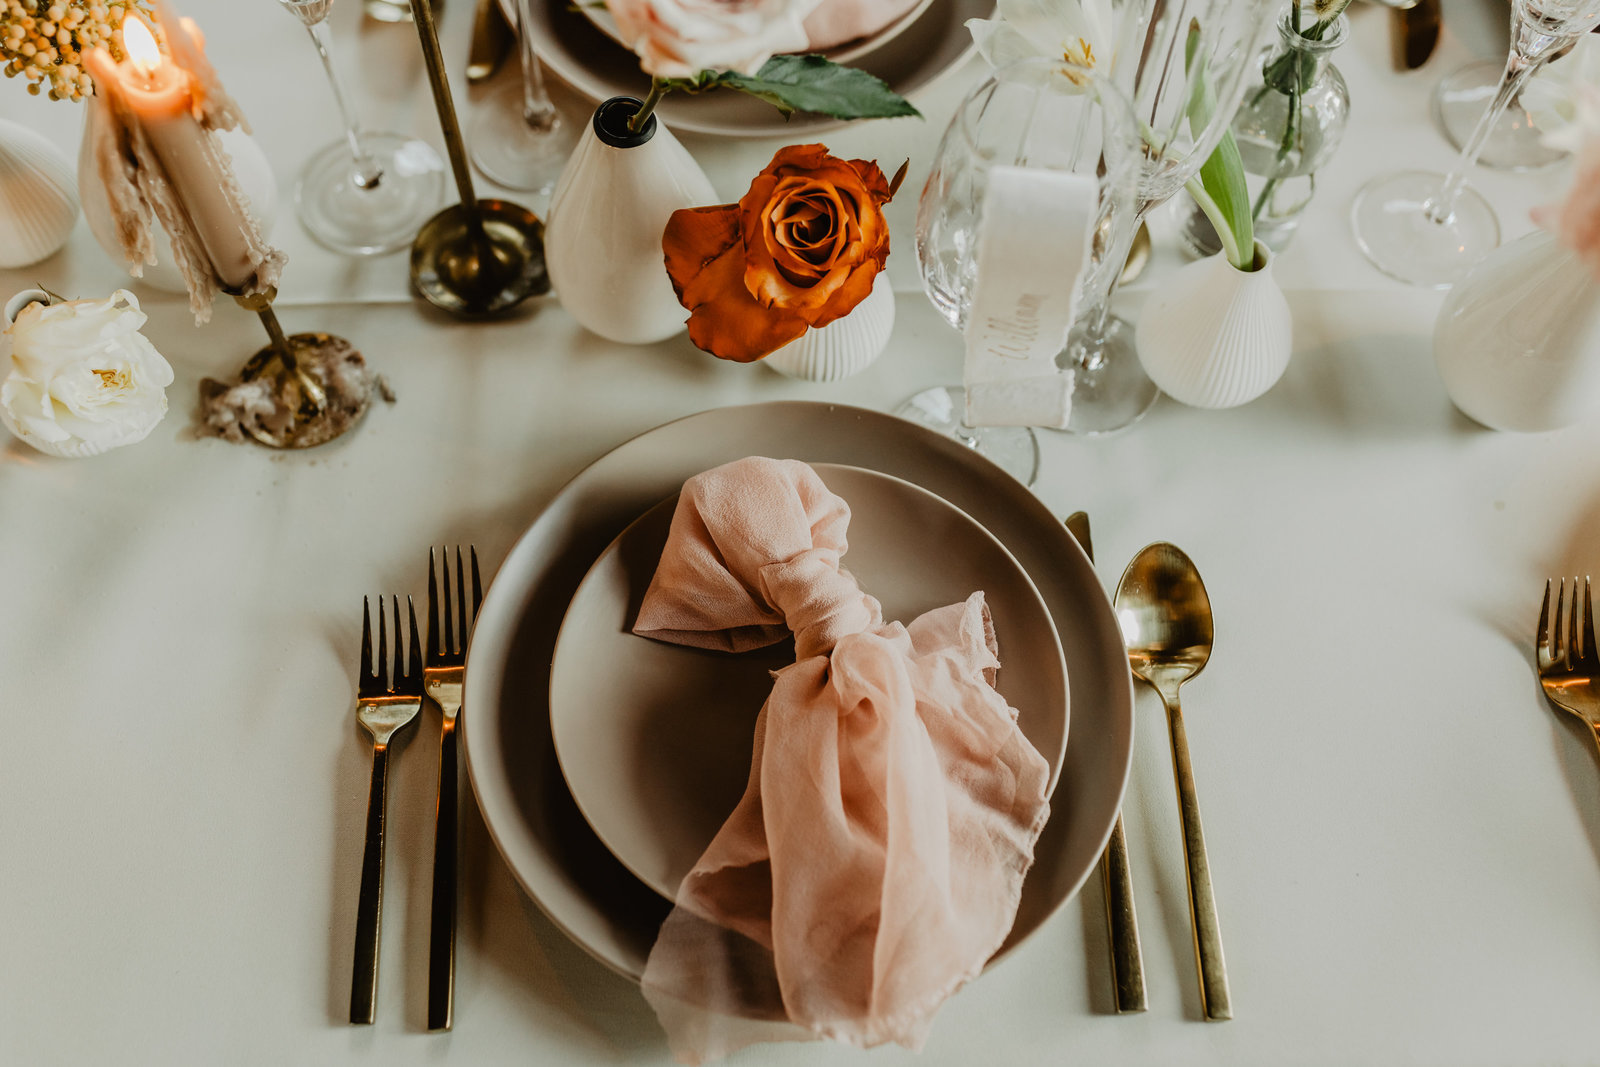 Modern wedding day place settings with blush napkin accent.